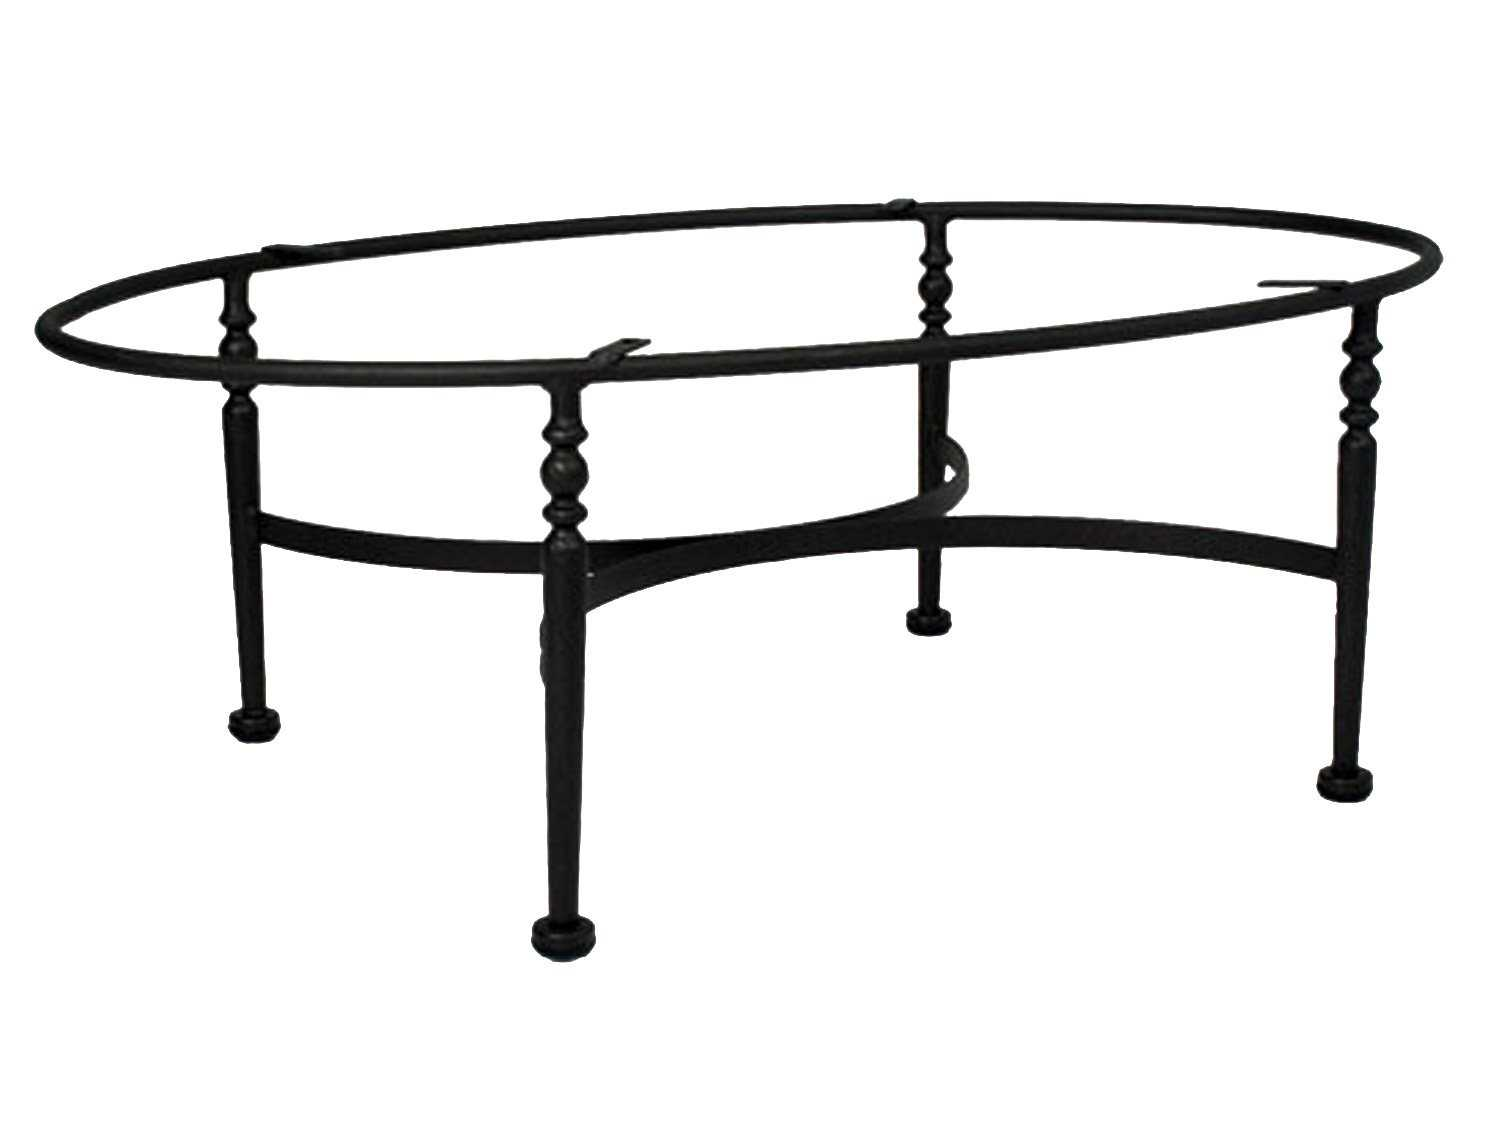 Meadowcraft athens wrought iron coffee table base 3613370 01 Wrought iron coffee tables